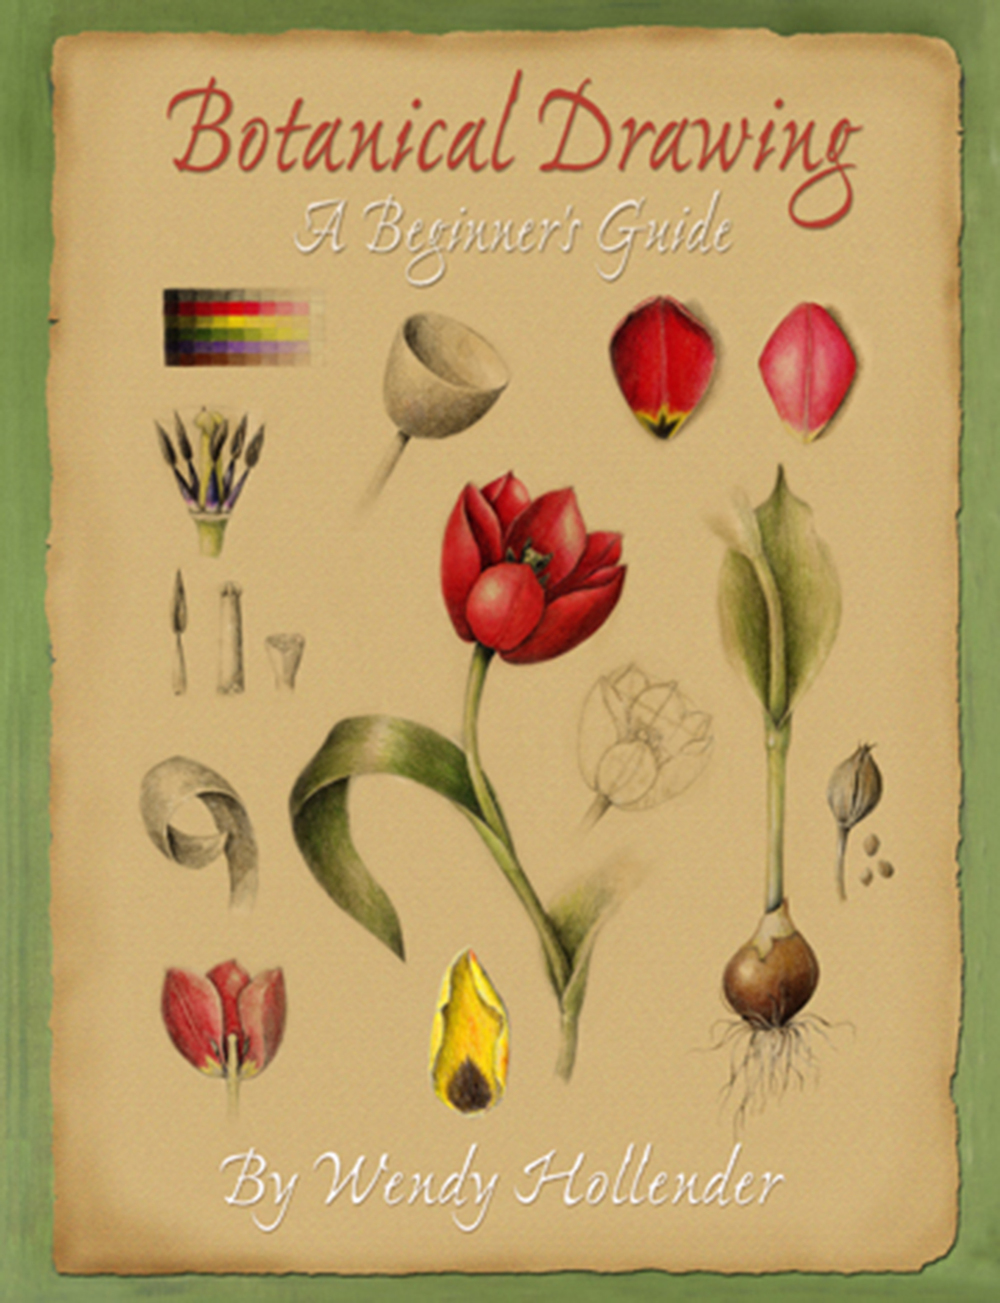 botanical drawing a beginner s guide new edition by wendy